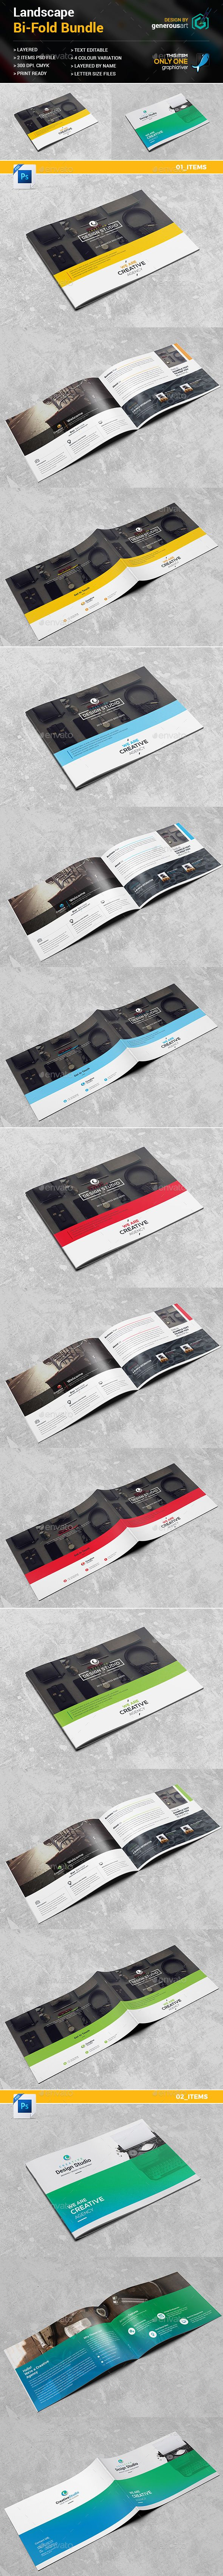 Landscape BiFold Brochure 2 in 1 — Photoshop PSD #blue #graphic • Download ➝ https://graphicriver.net/item/landscape-bifold-brochure-2-in-1/19260961?ref=pxcr